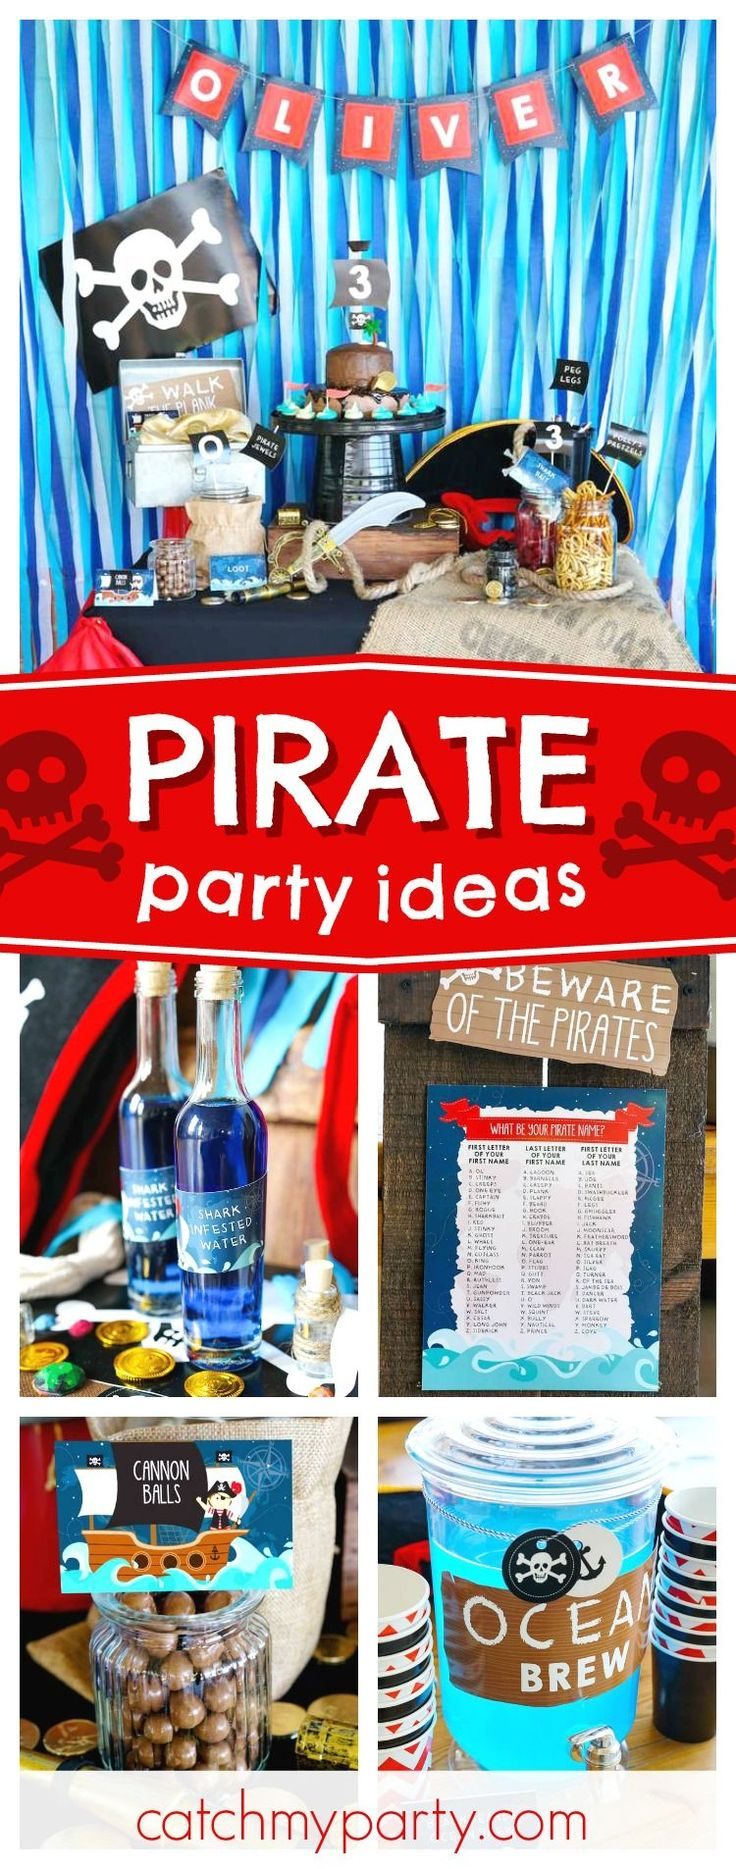 Aye Aye Captain! Check out this awesome pirate themed birthday party! The bottles of 'shark infested water' are so cool!! See more party ideas and share yours at CatchMyParty.com #catchmyparty #partyideas #pirate